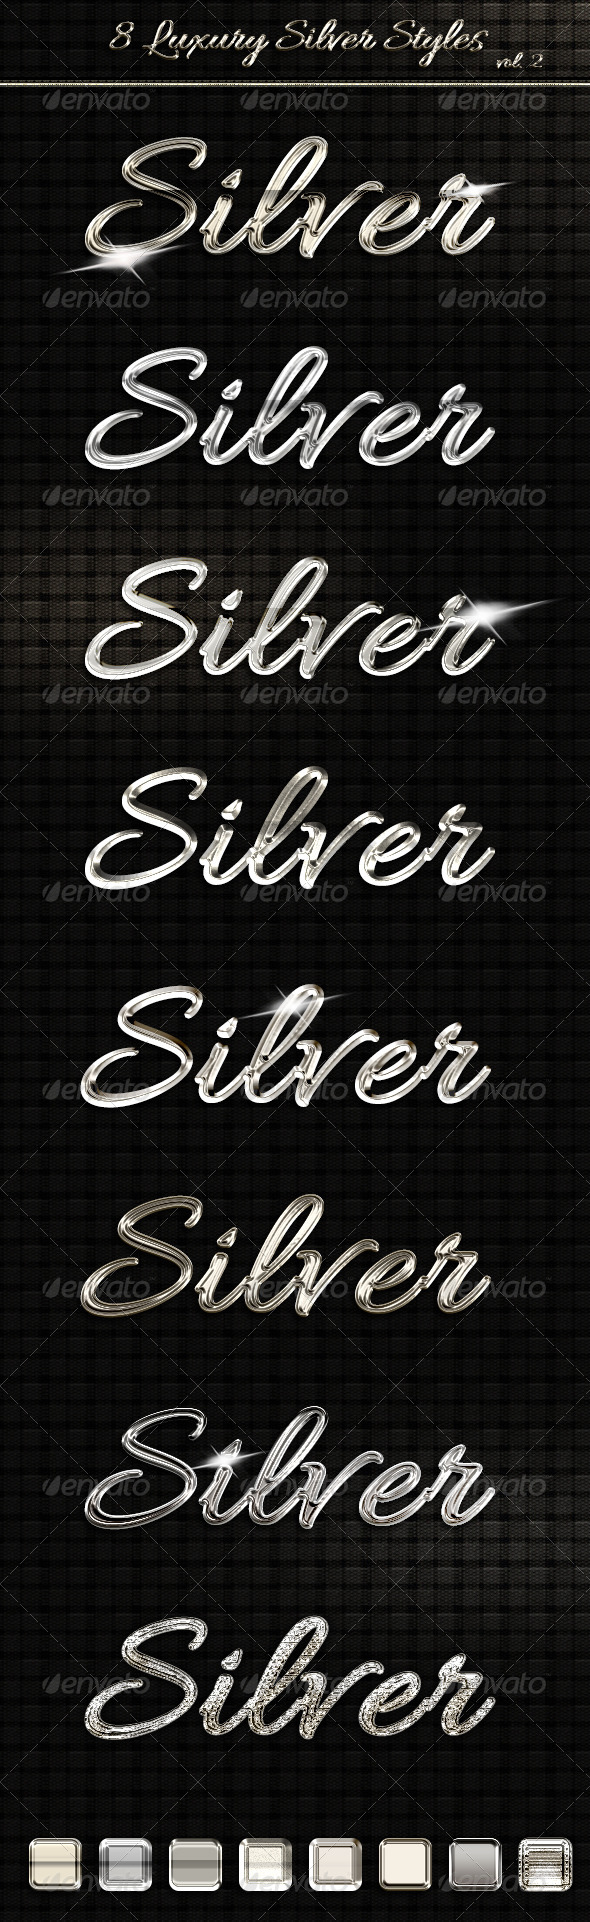 8 Luxury Silver Text Styles vol2 - Text Effects Styles